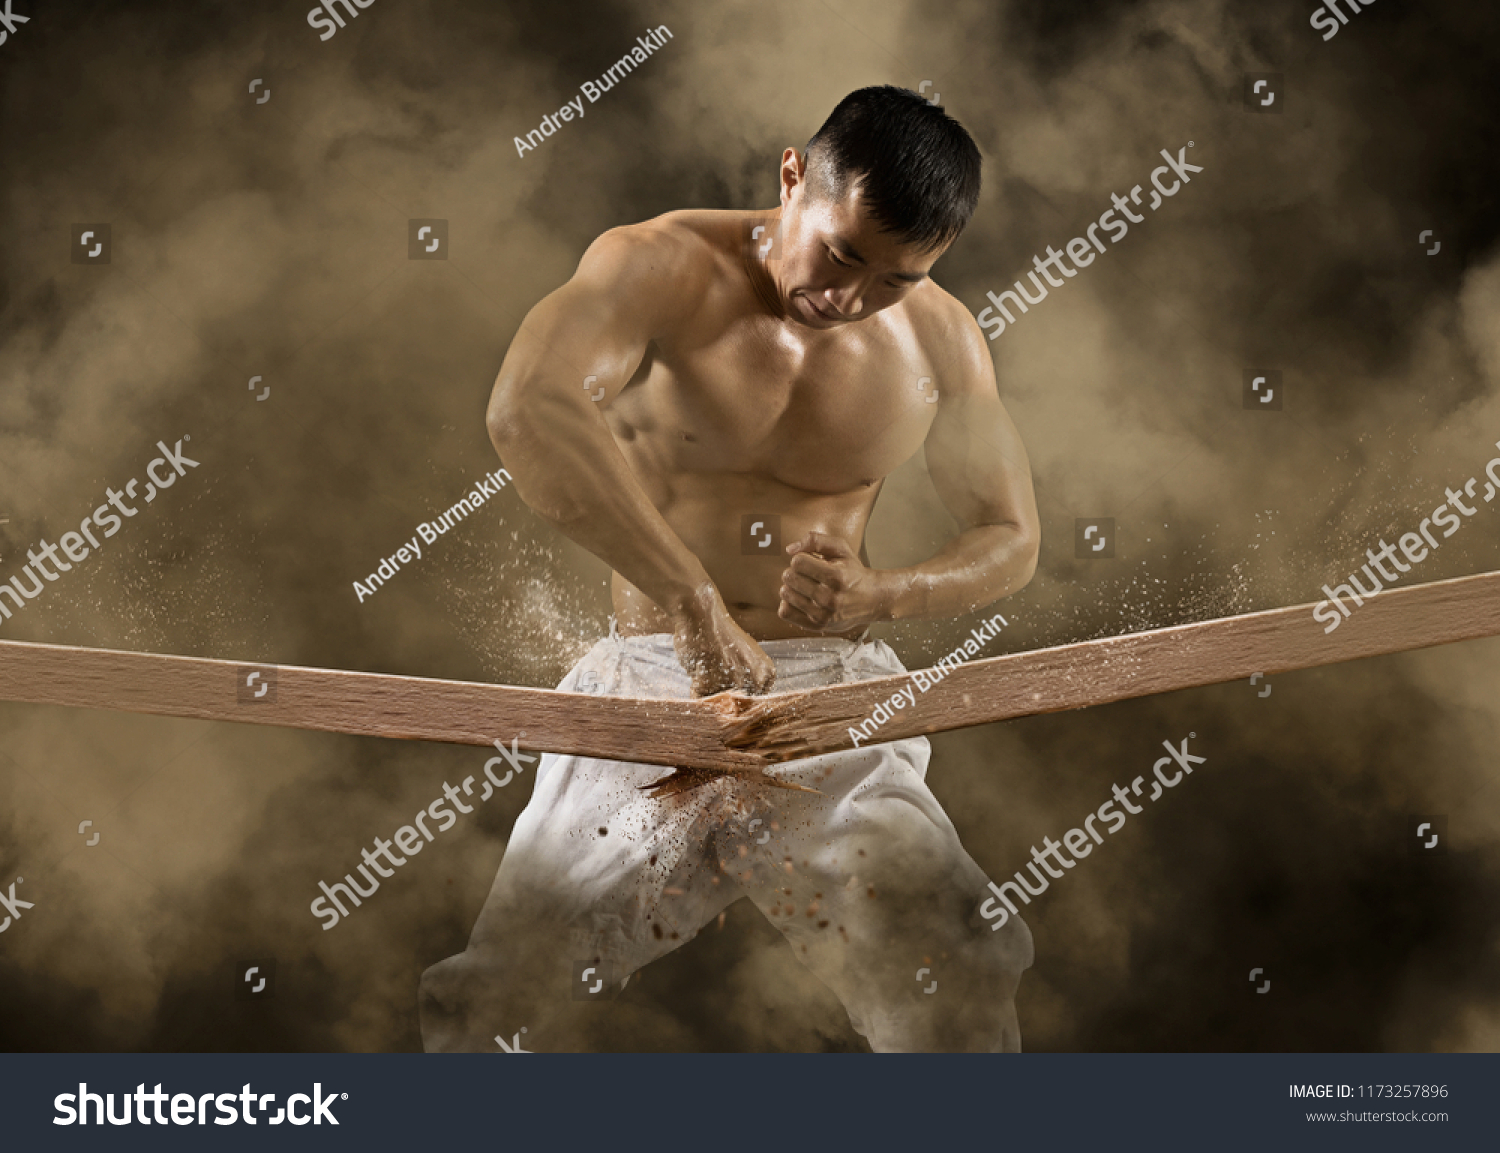 Determined karate man breaking with hand wooden board #1173257896